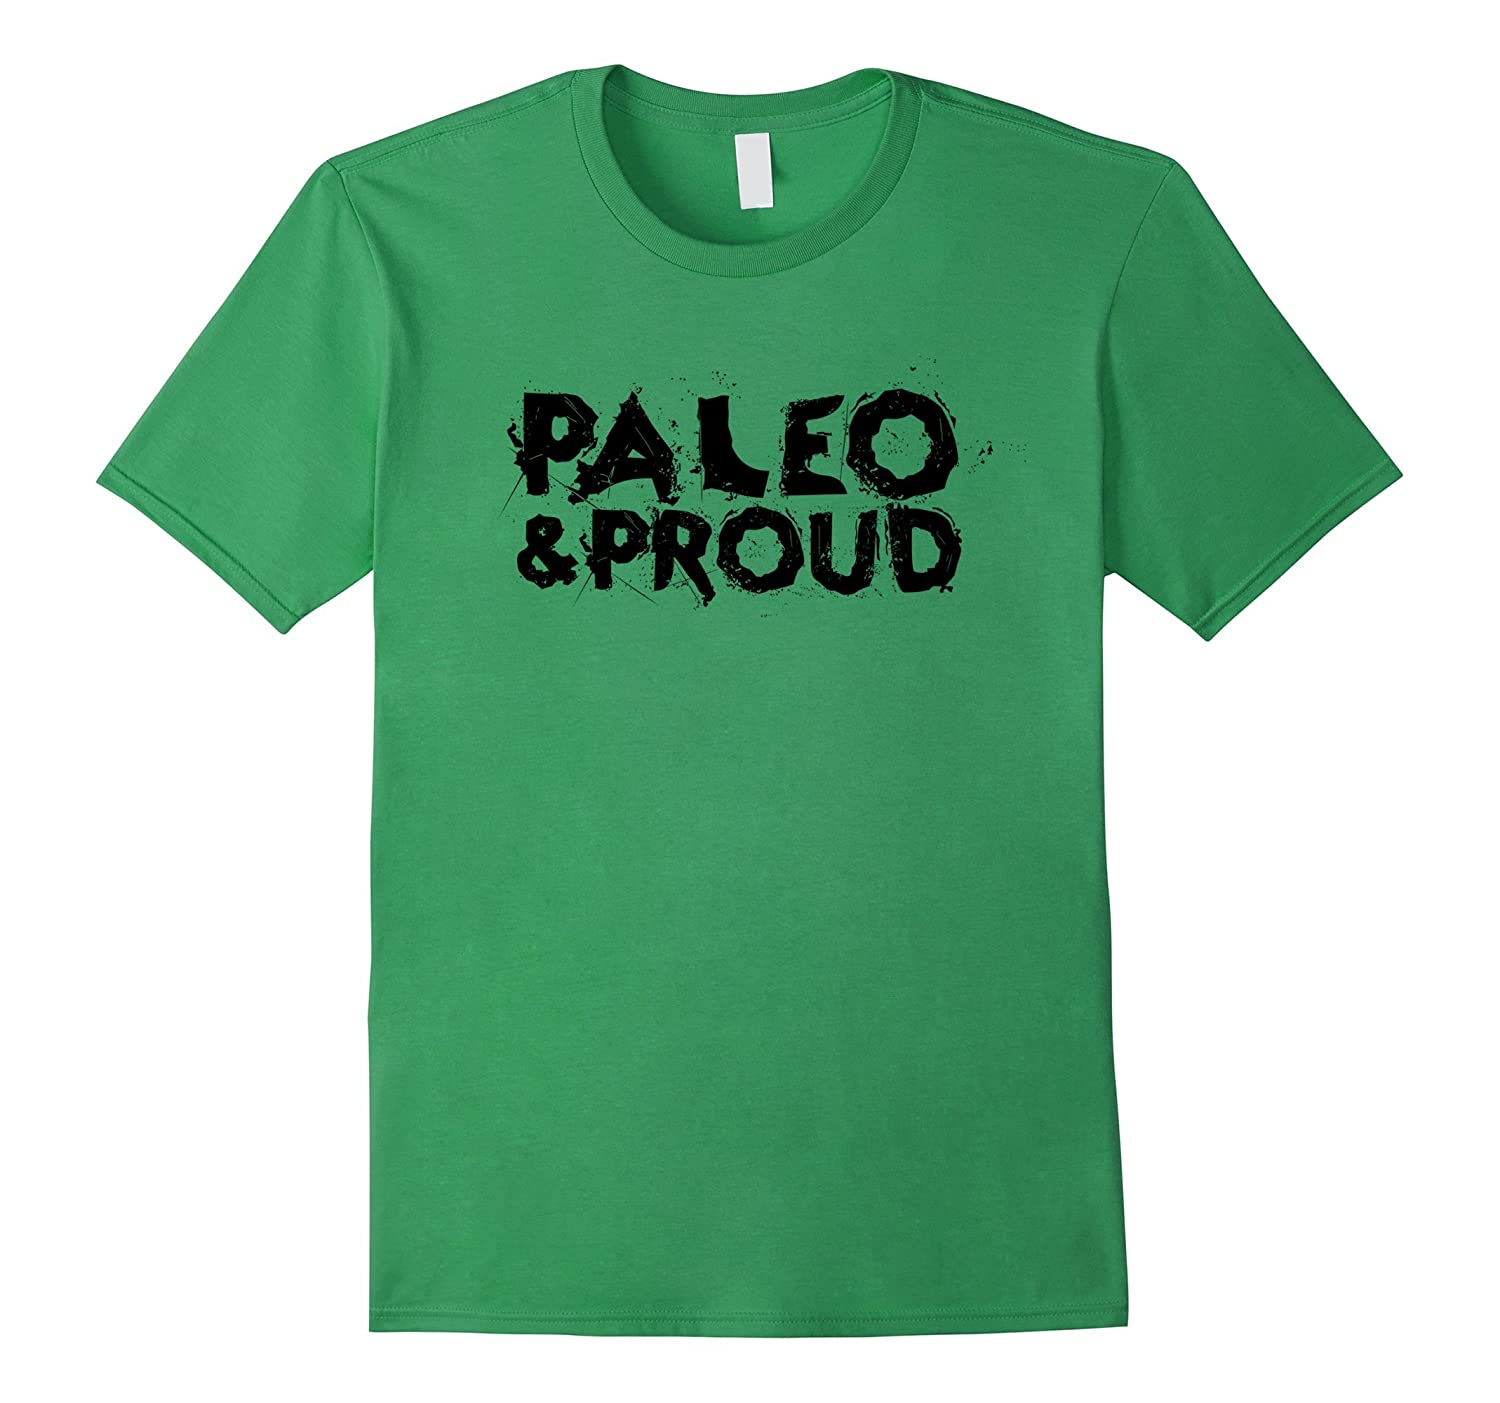 Paleo and Proud T-shirt - Paleo Diet T-shirt-TH